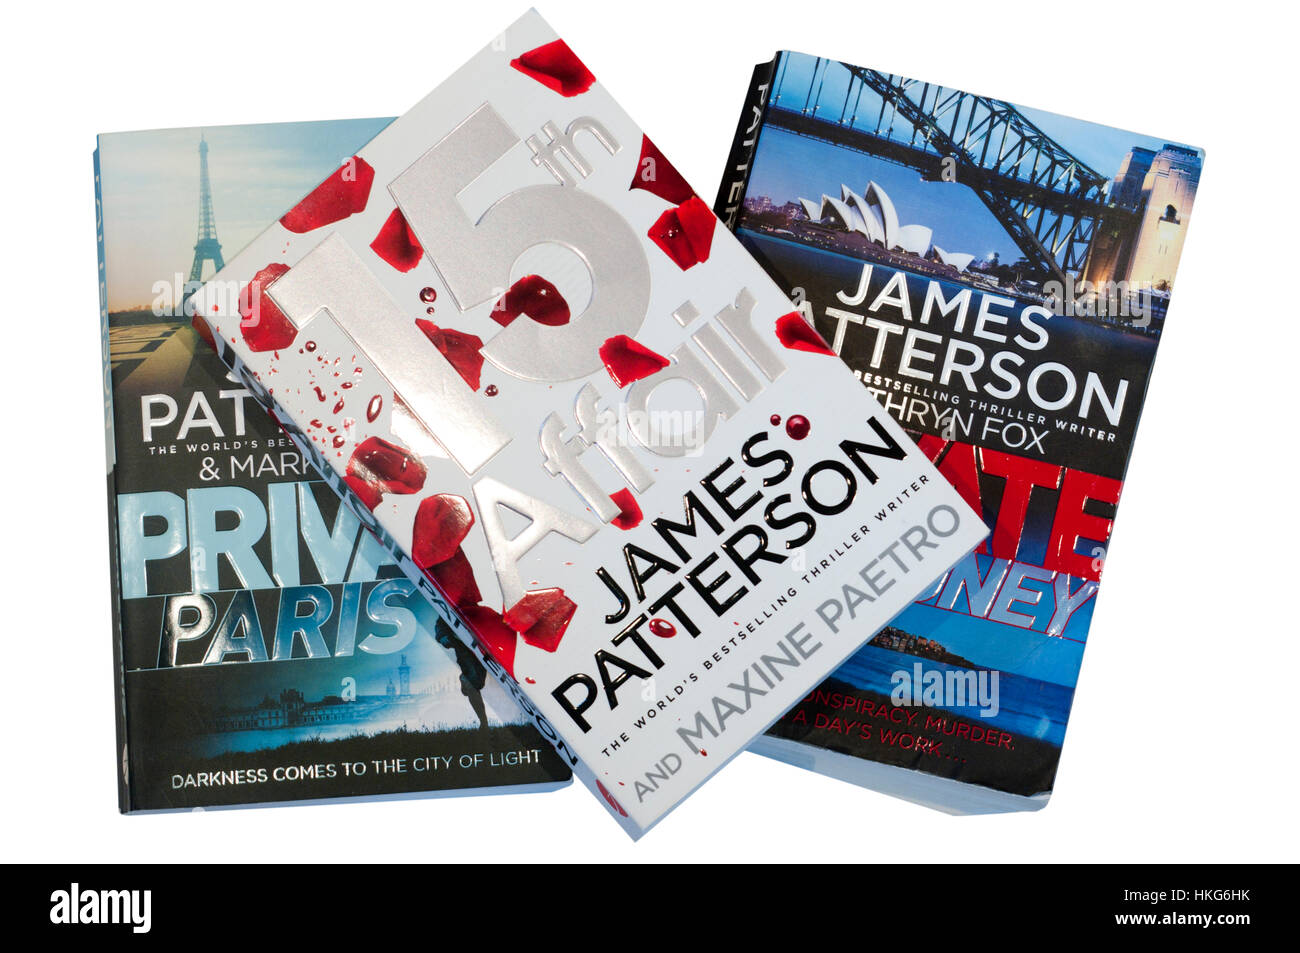 James Patterson Paperback Books Private Sydney Private Paris and 15th Affair - Stock Image